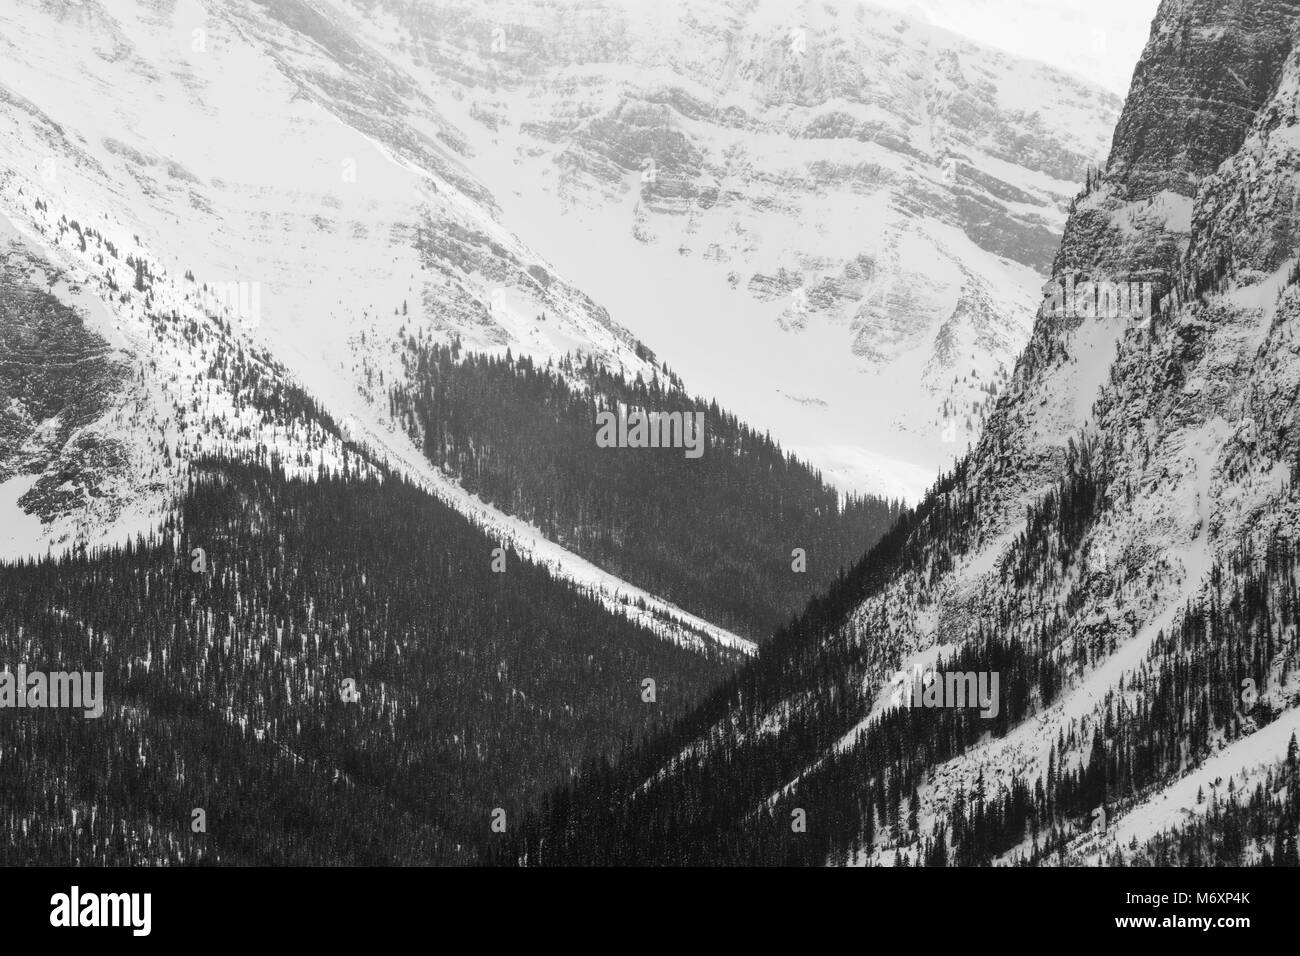 Black and white winter landscape of forested mountain slopes in the Canadian Rockies, Jasper National Park, Canada - Stock Image